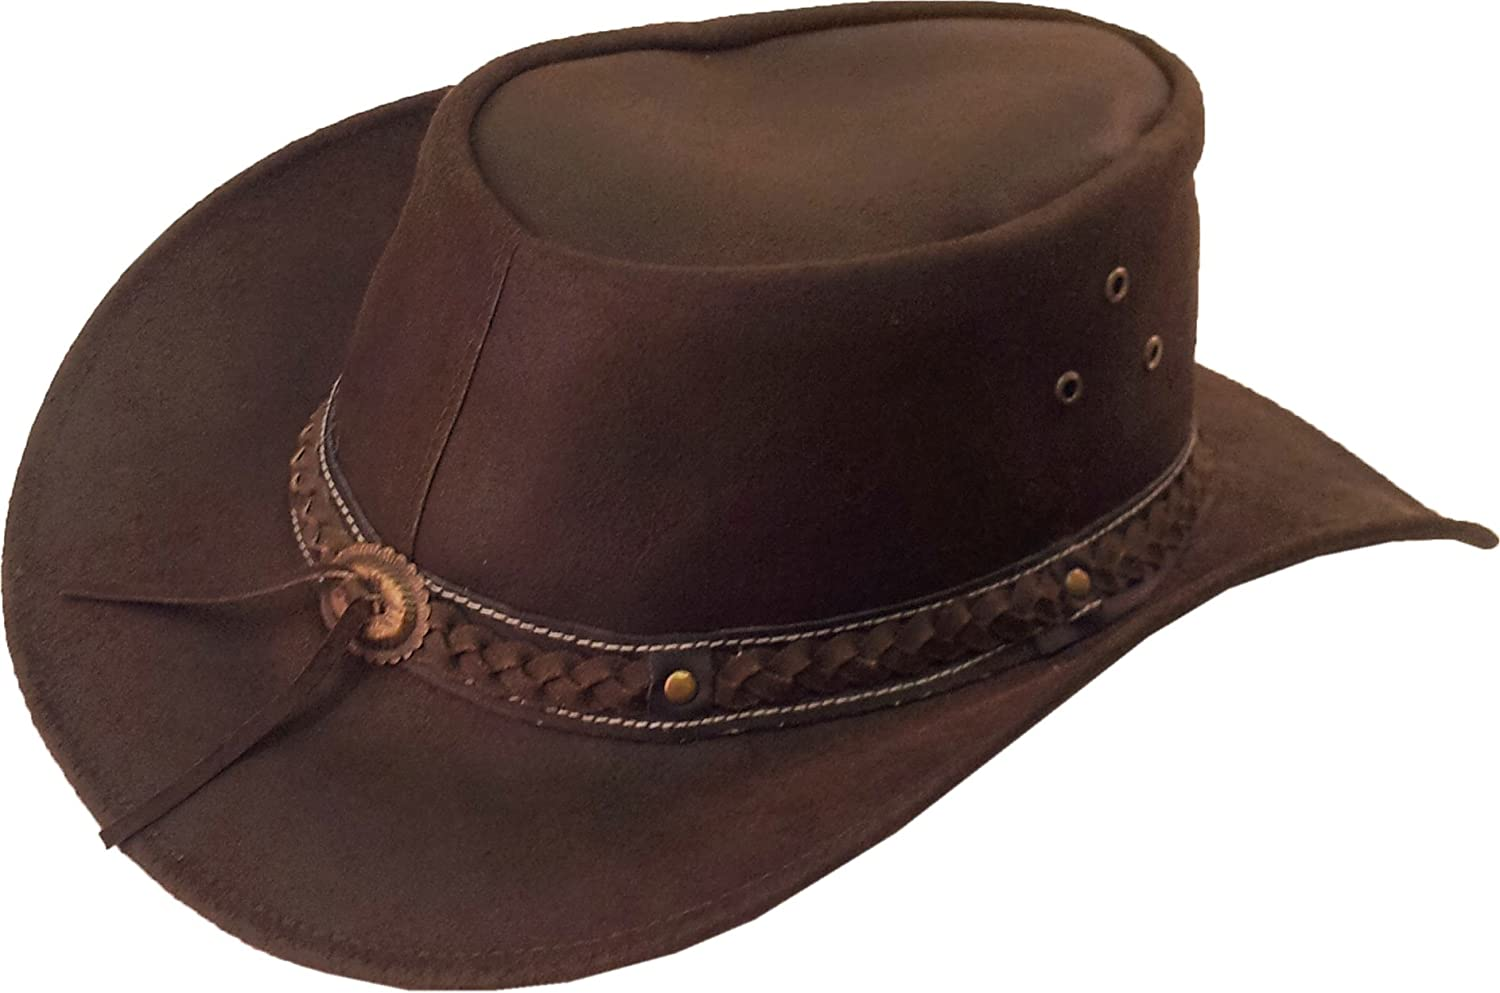 Real Leather Australian Cowboy Hat Aussie brown Sun hat #8H